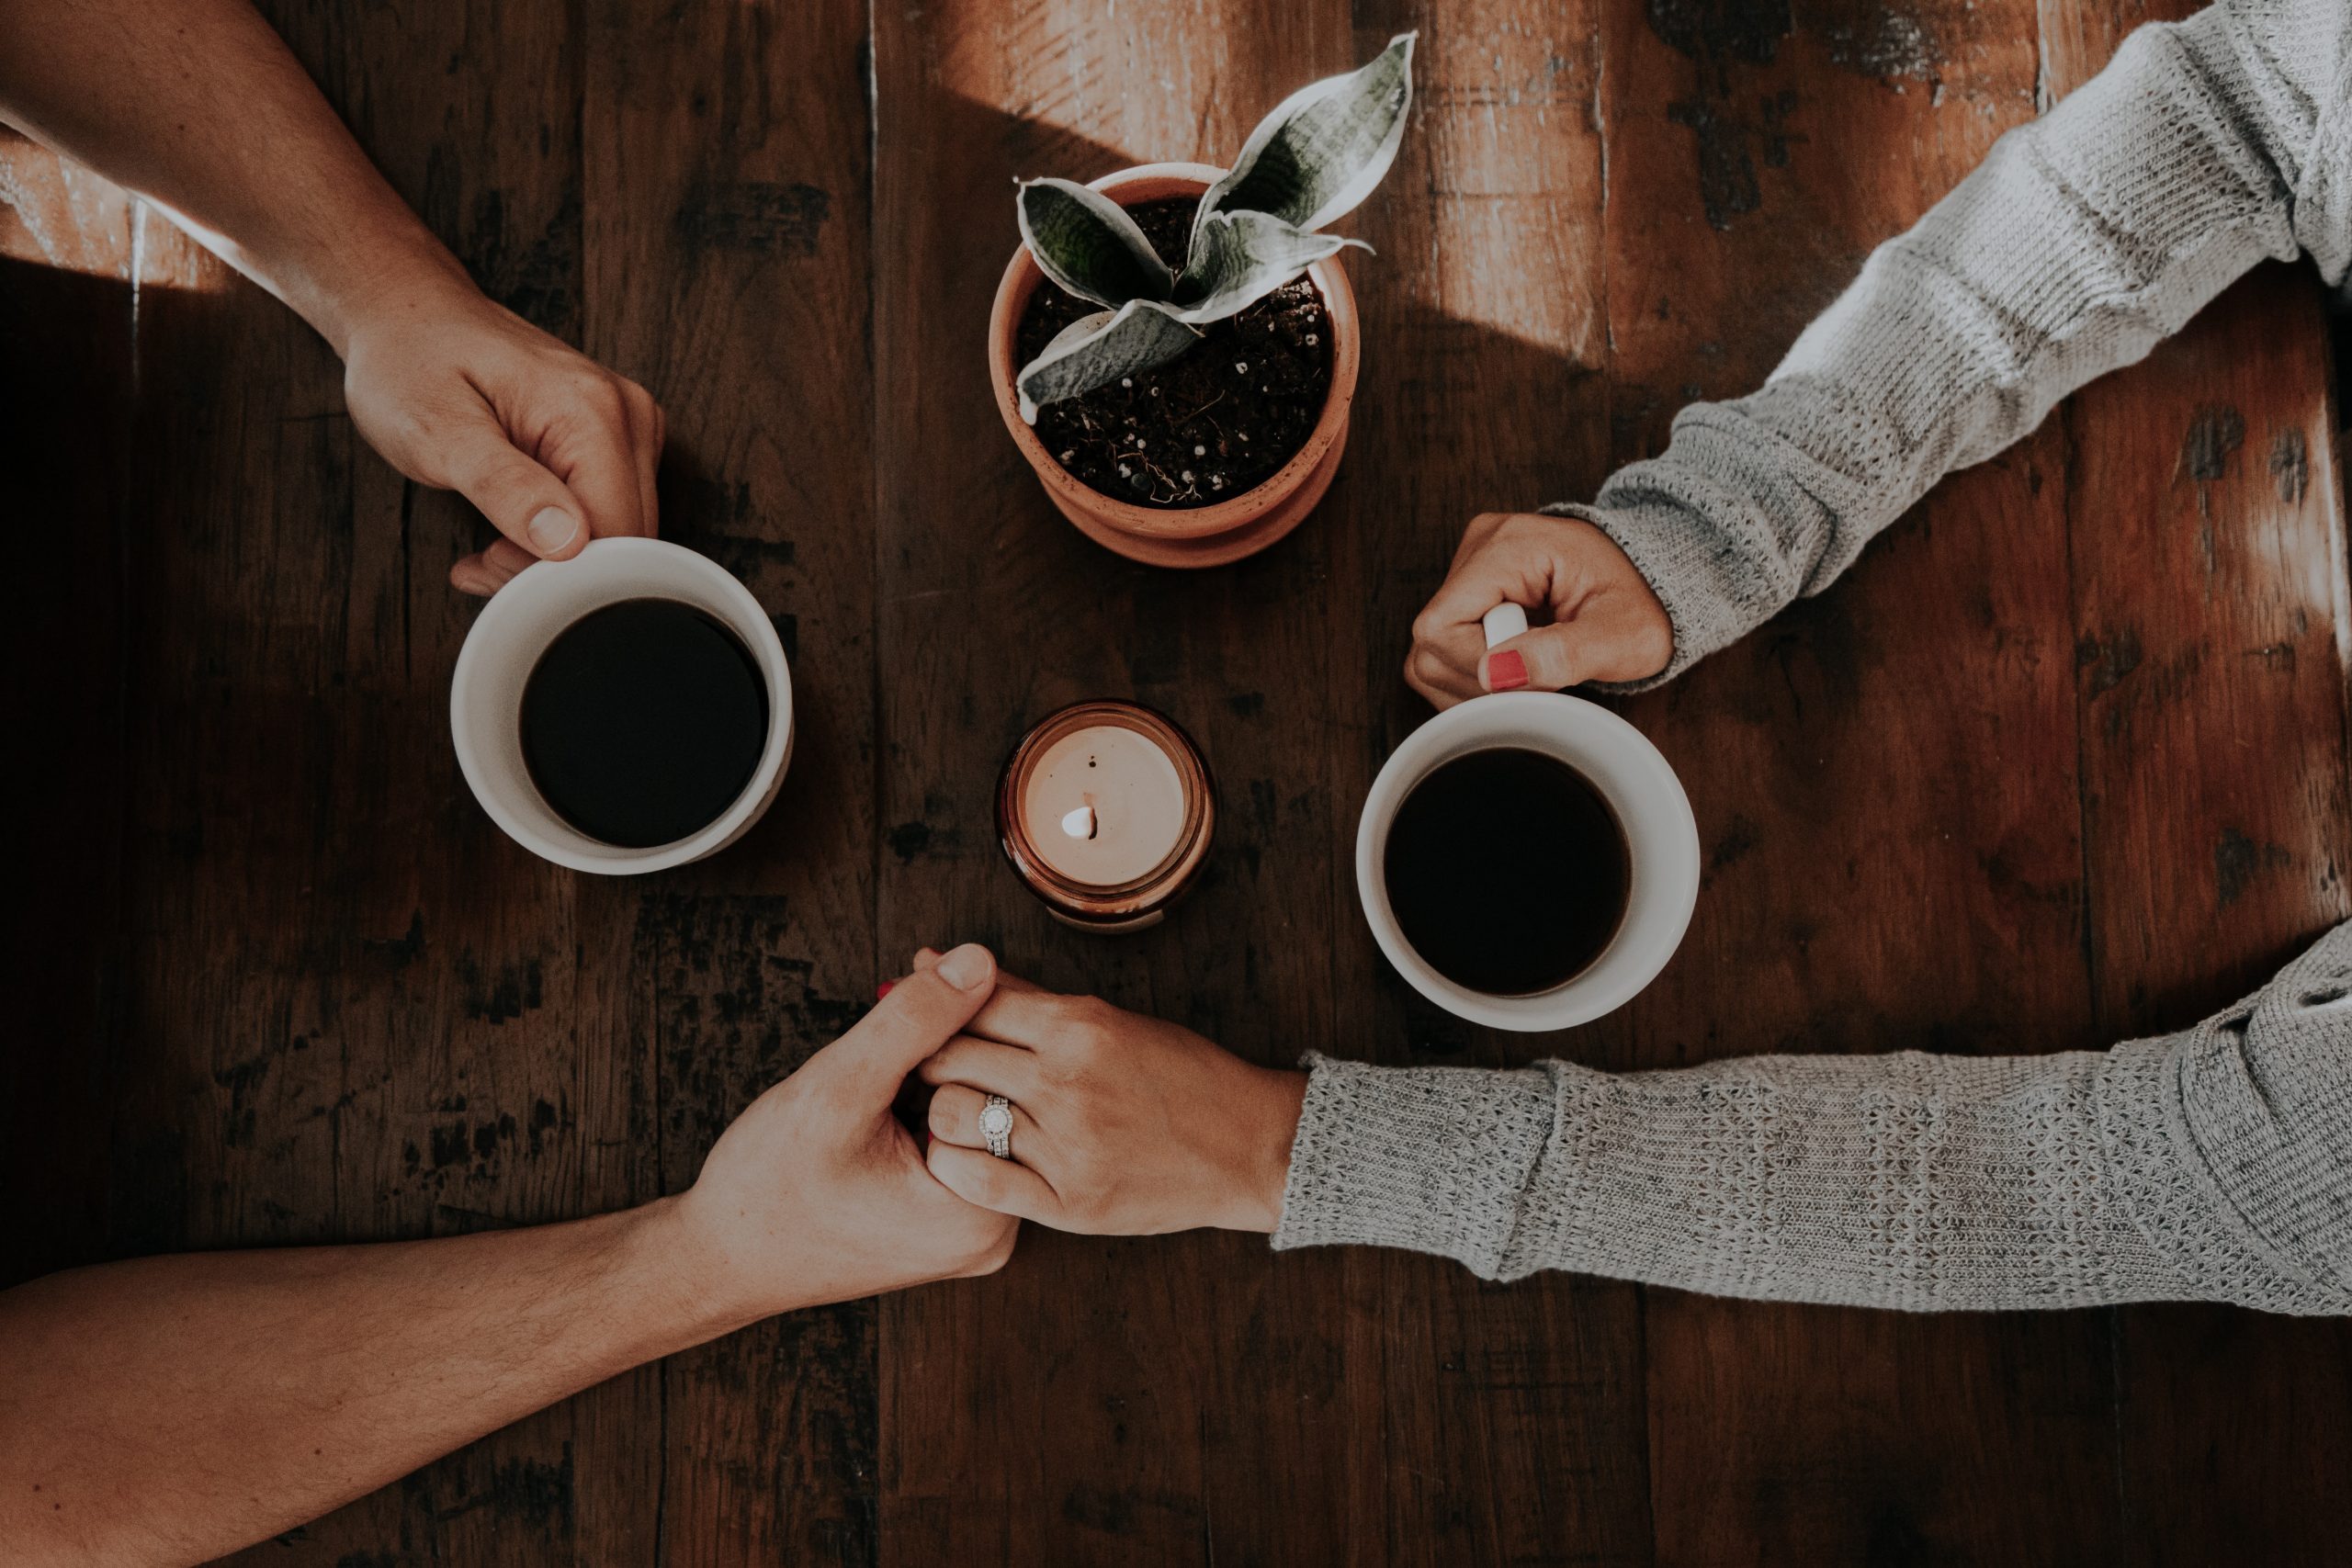 Man and woman holding hands over coffee